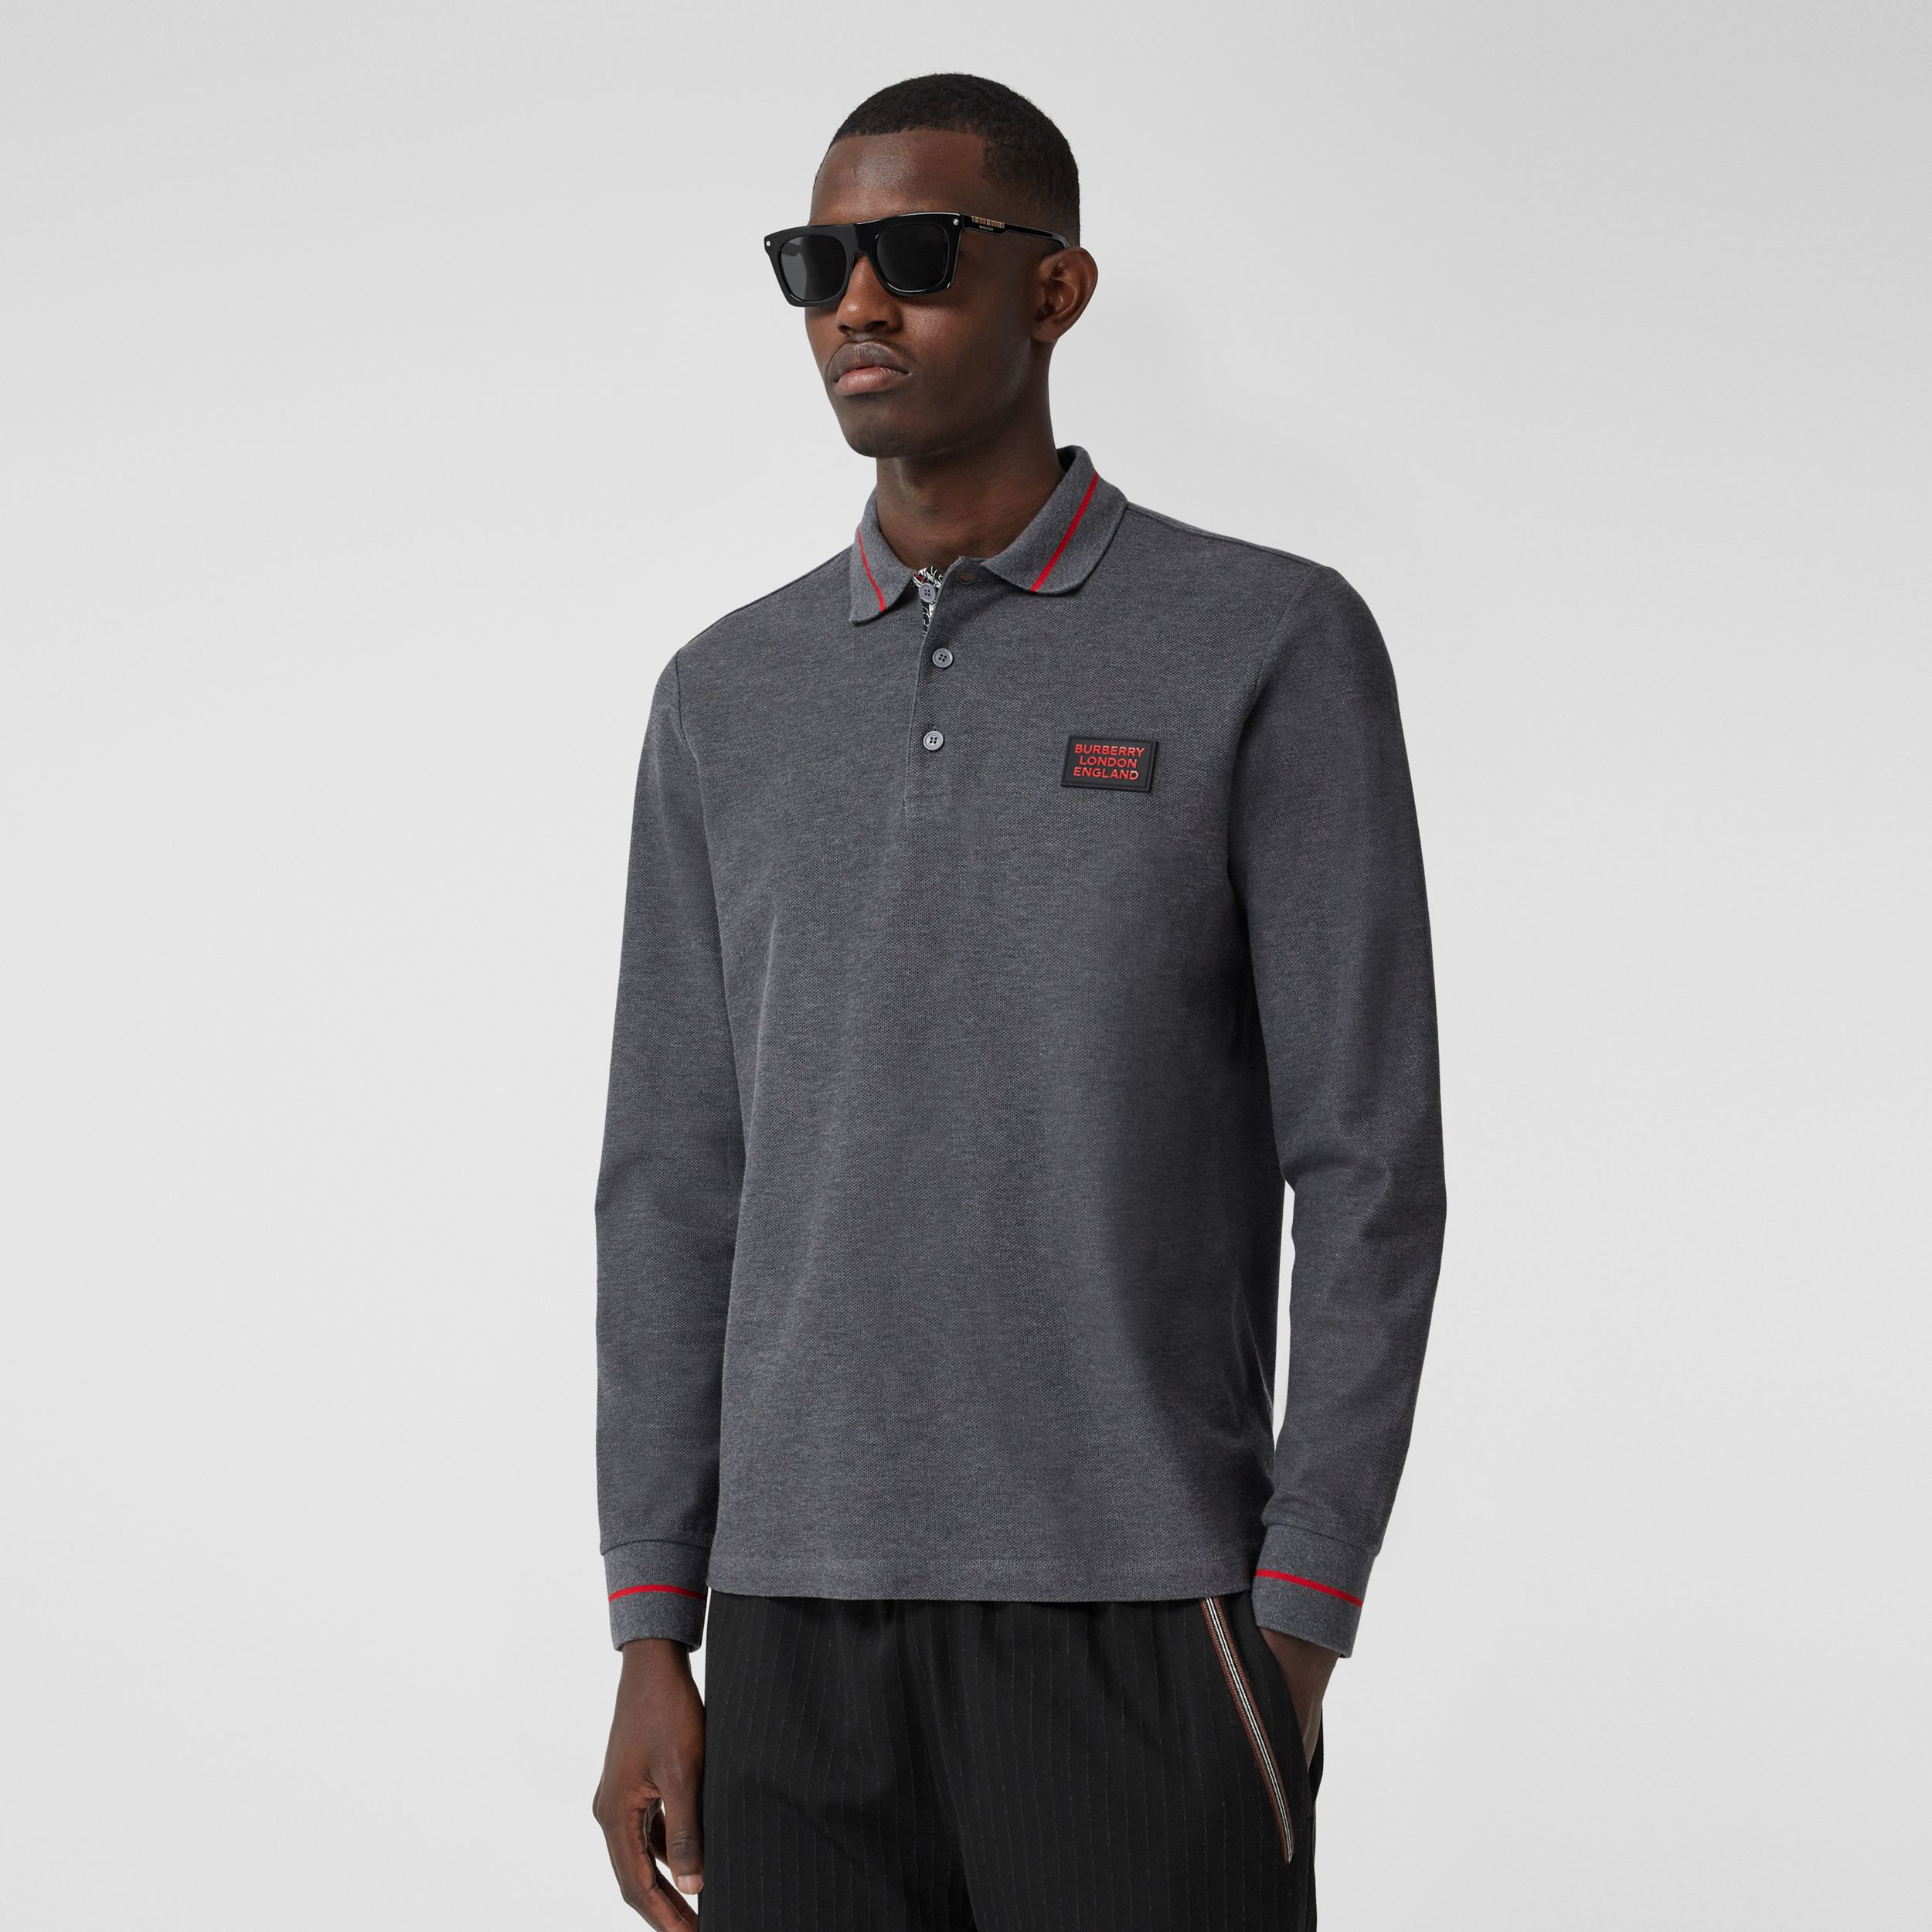 Long-sleeve Logo Appliqué Cotton Polo Shirt in Mid Grey Melange - Men | Burberry Canada - 1